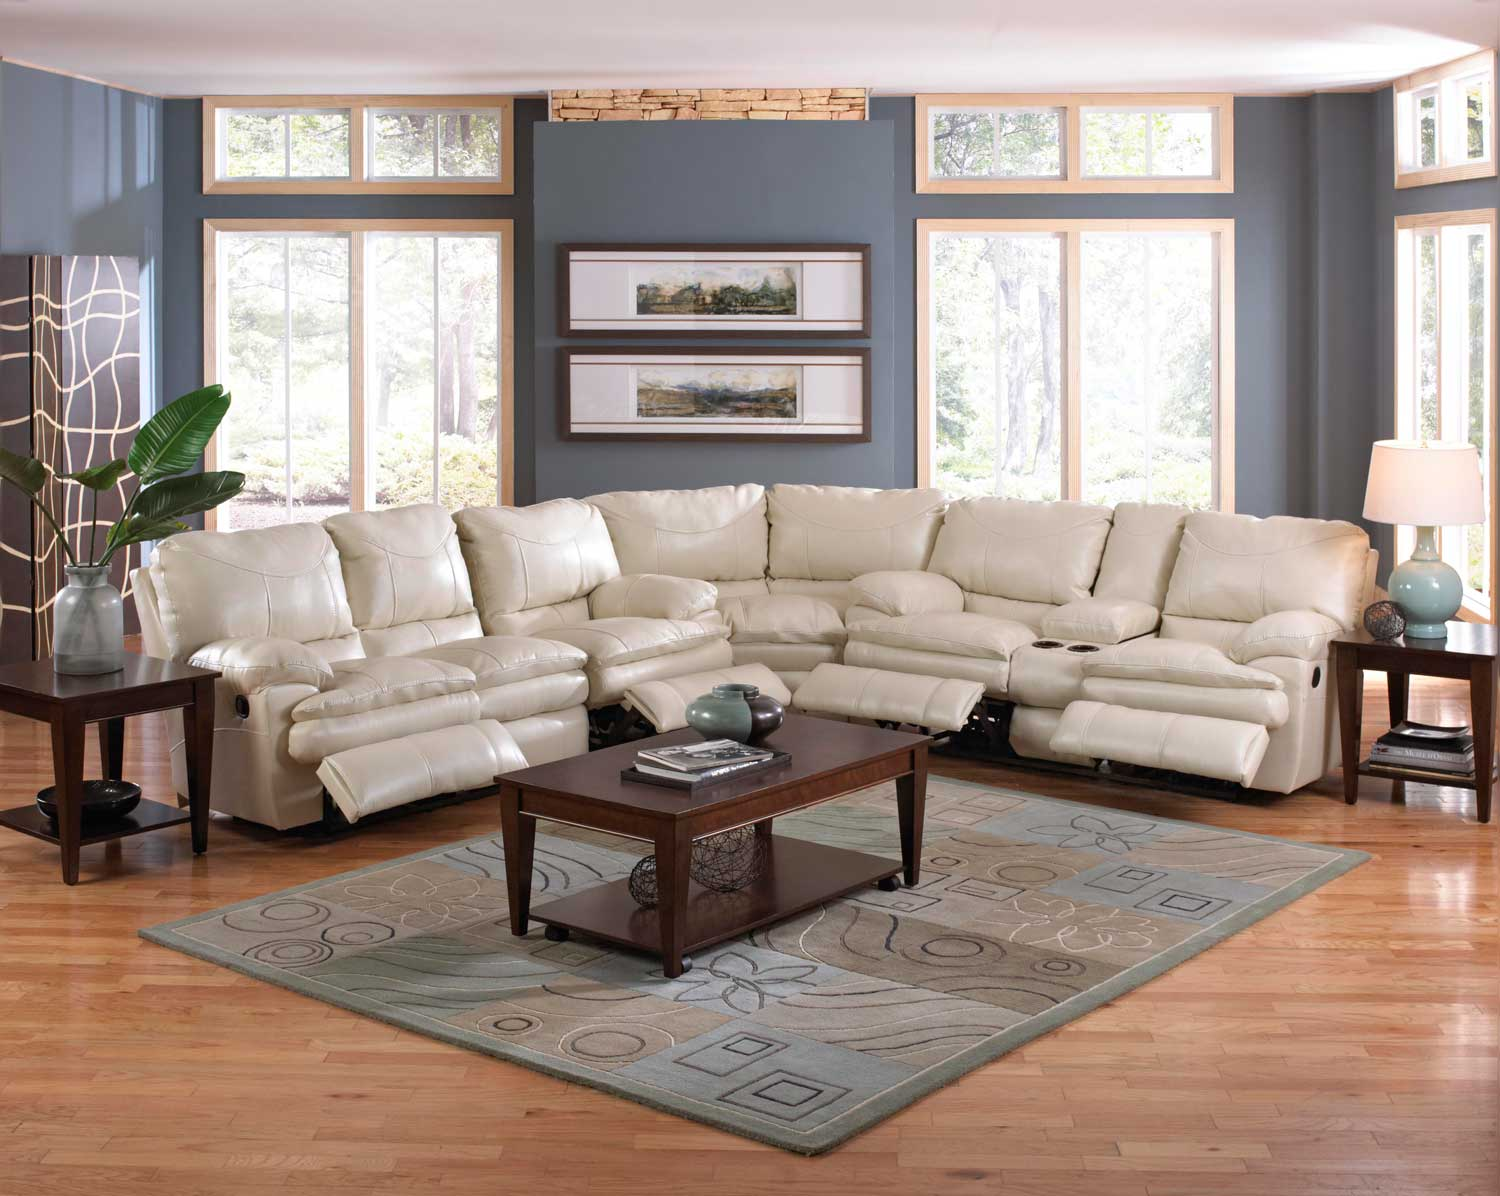 Catnapper Perez Reclining Sectional Sofa Set Ice 4141